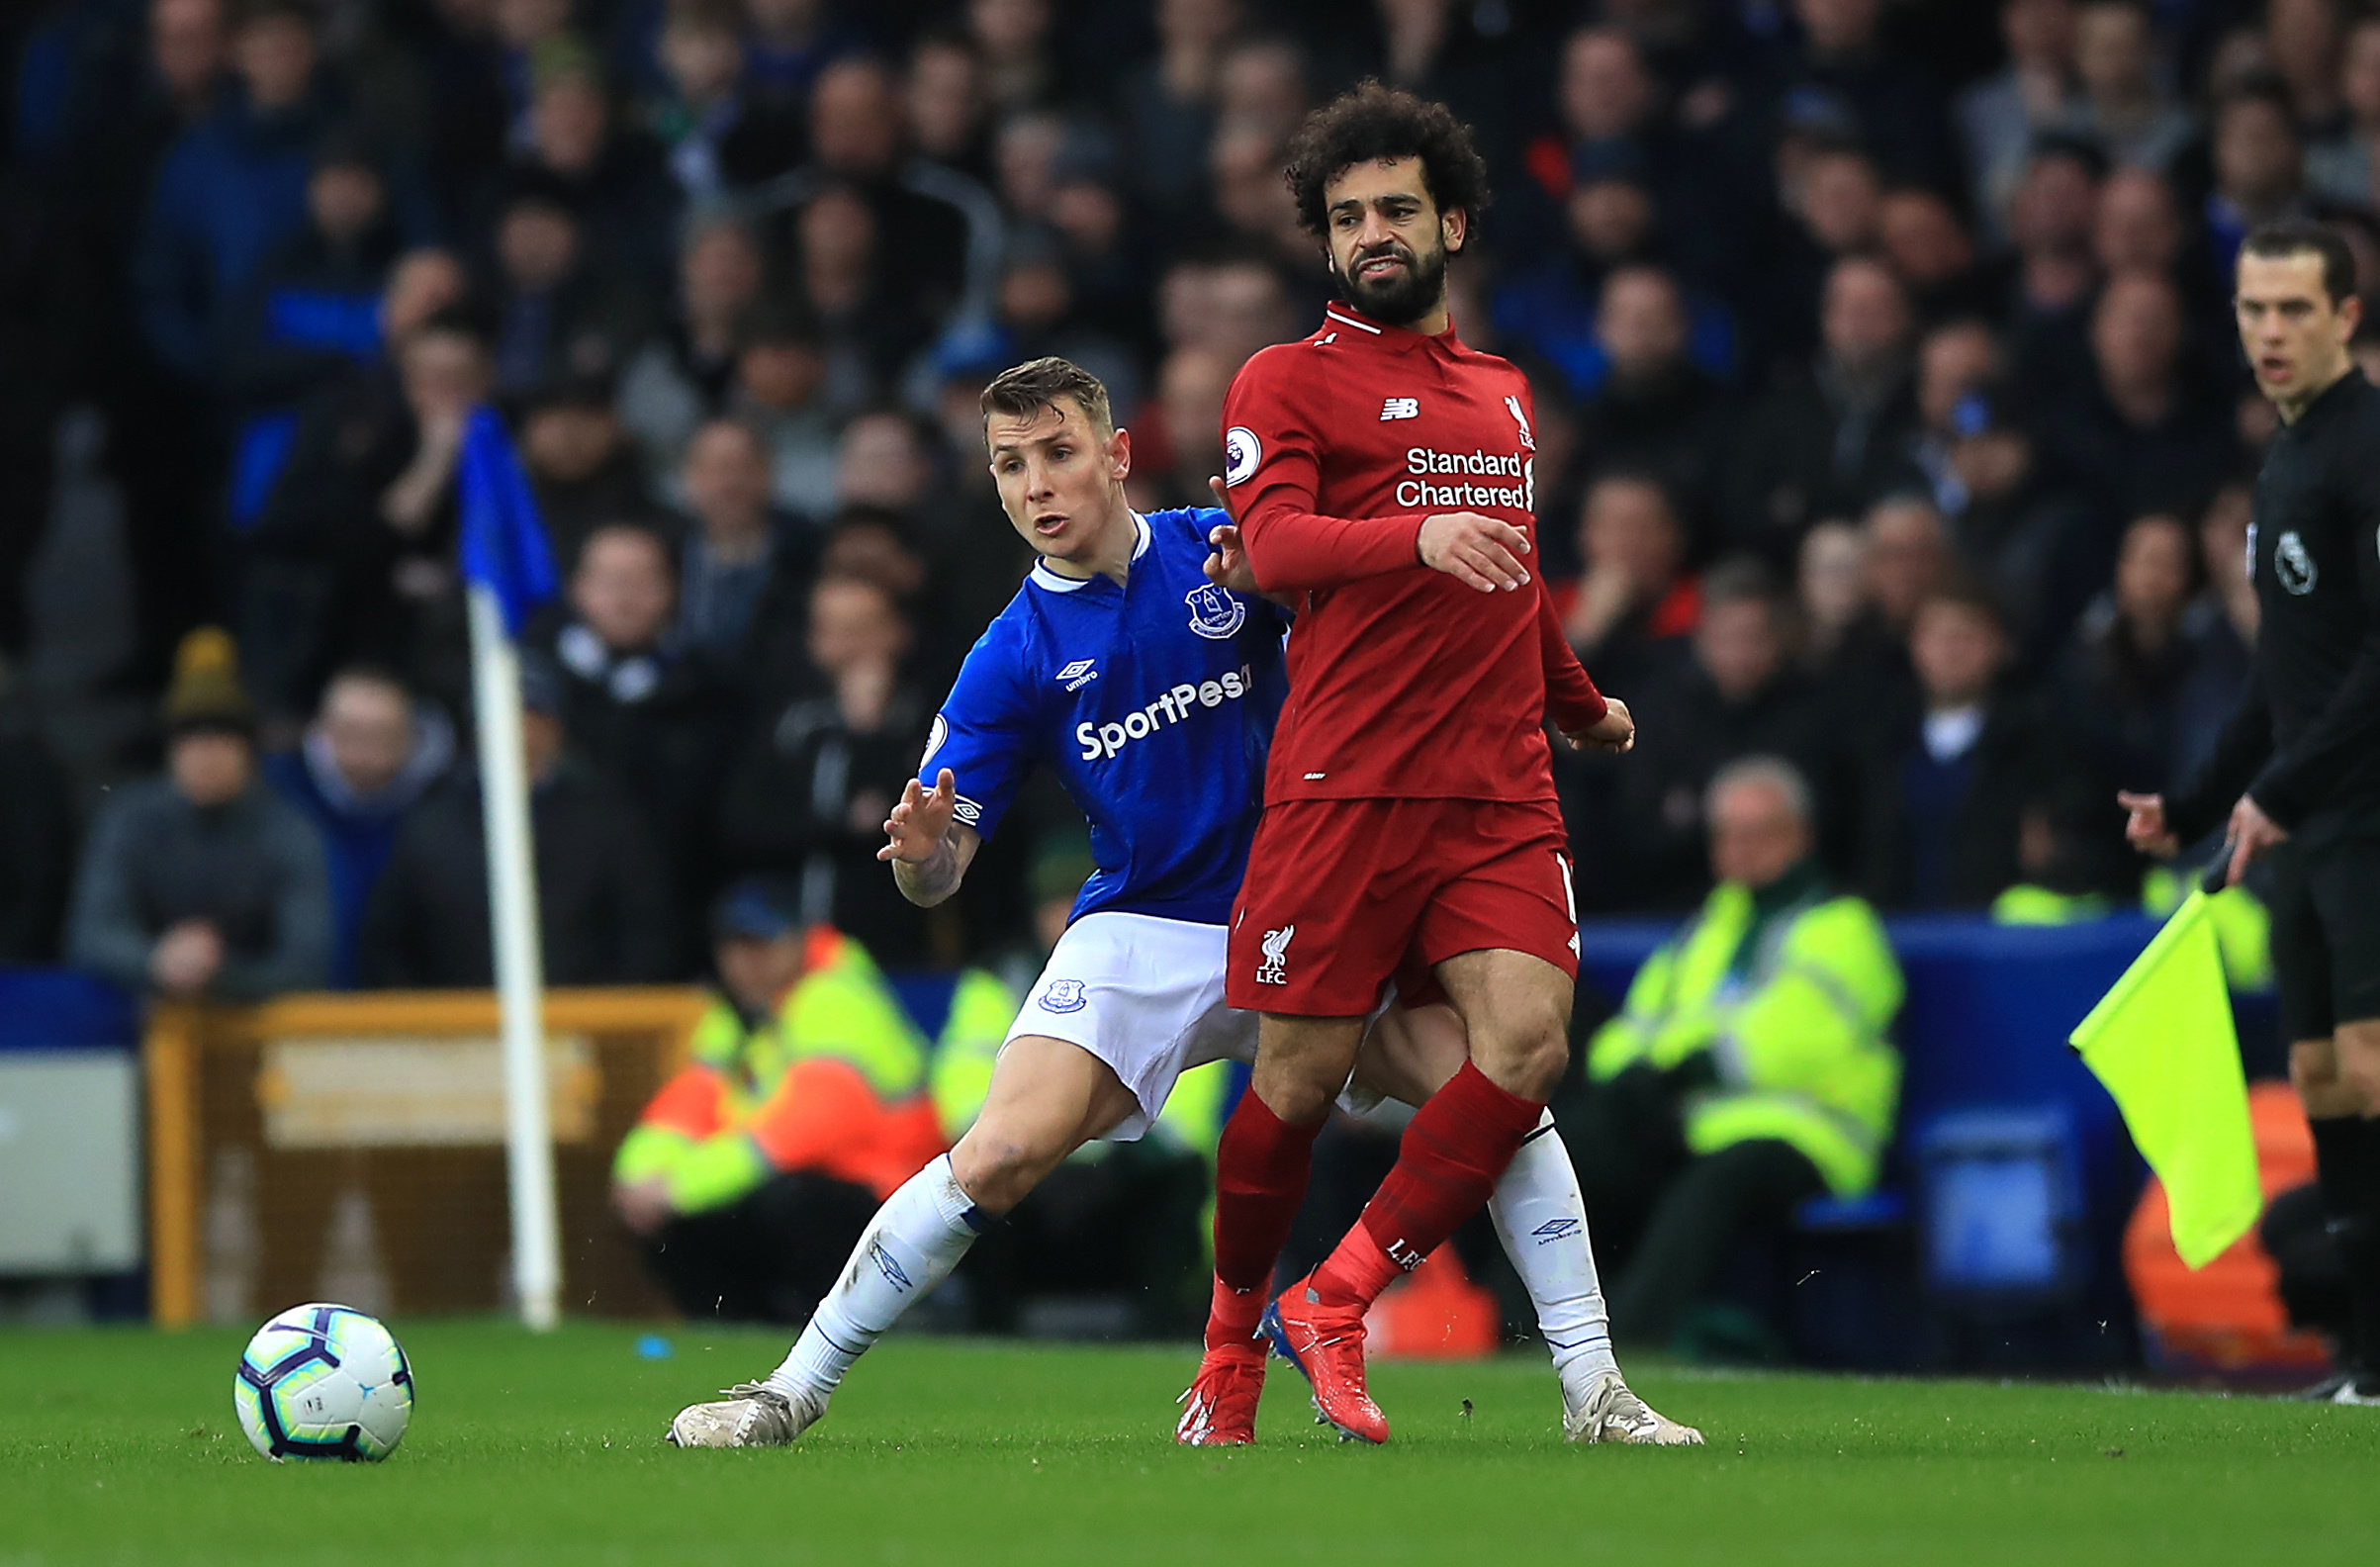 Everton V Liverpool Derby To Take Place At Goodison Park